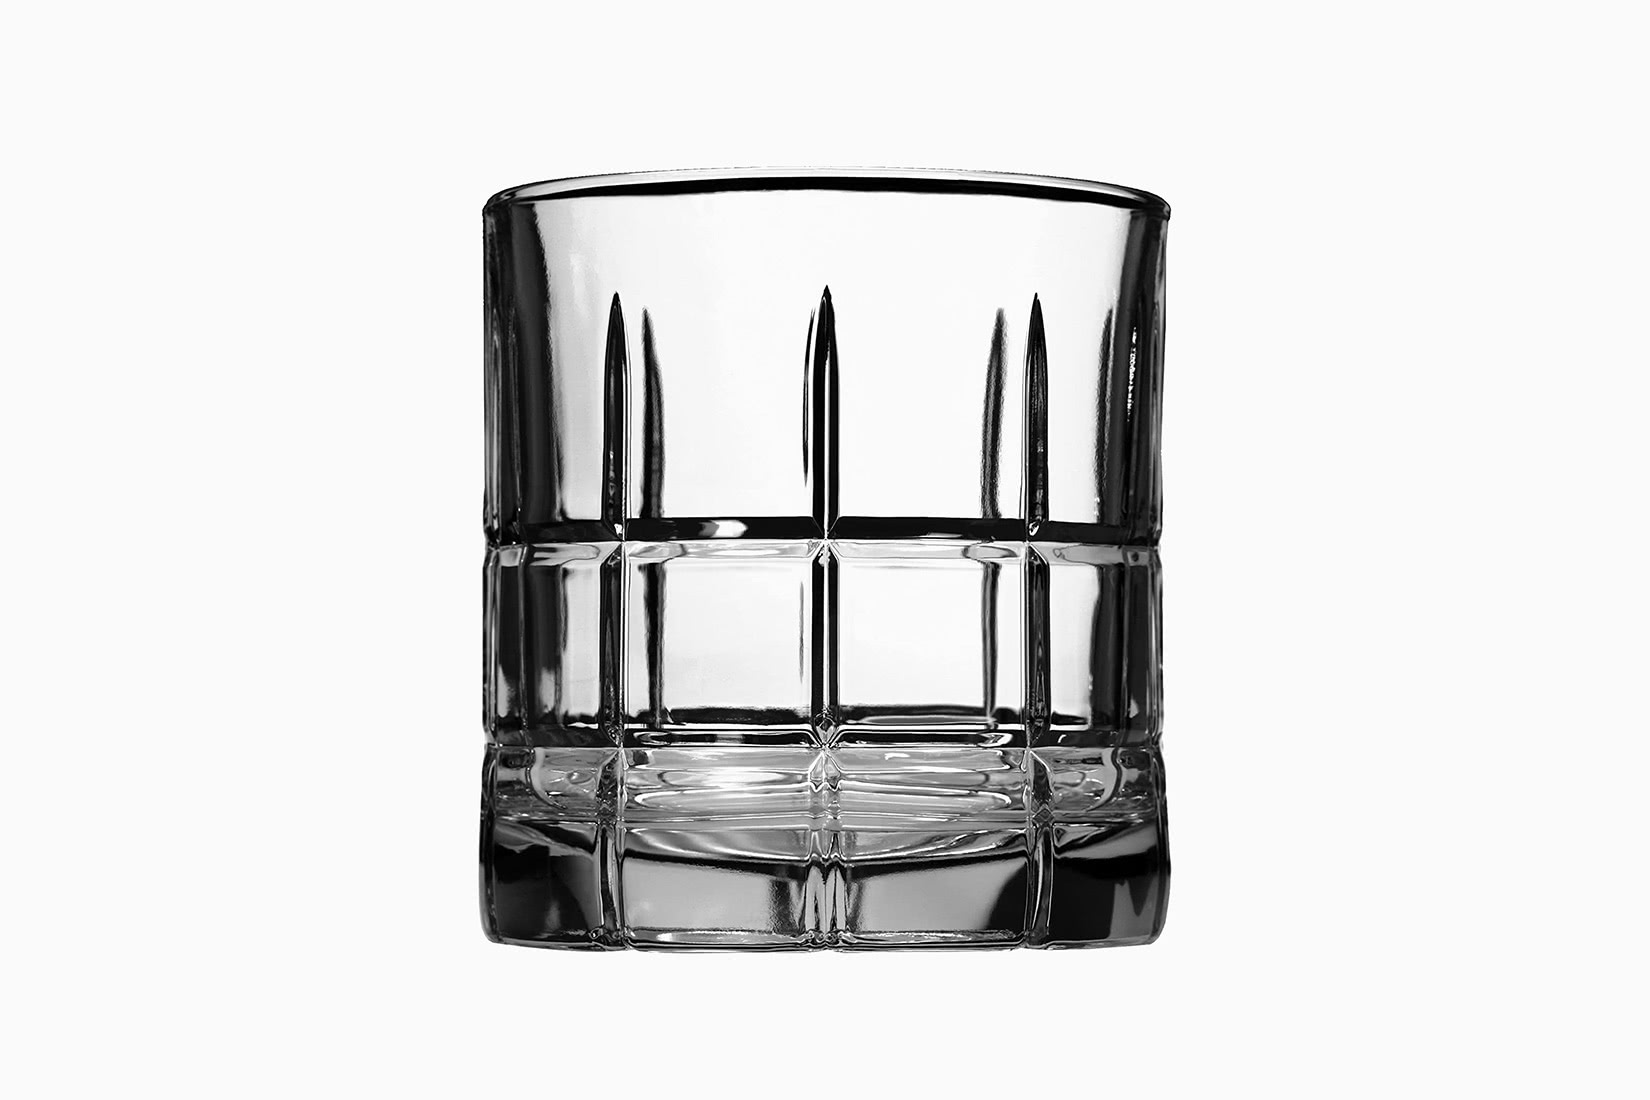 best whisky glass manchester rocks - Luxe Digital